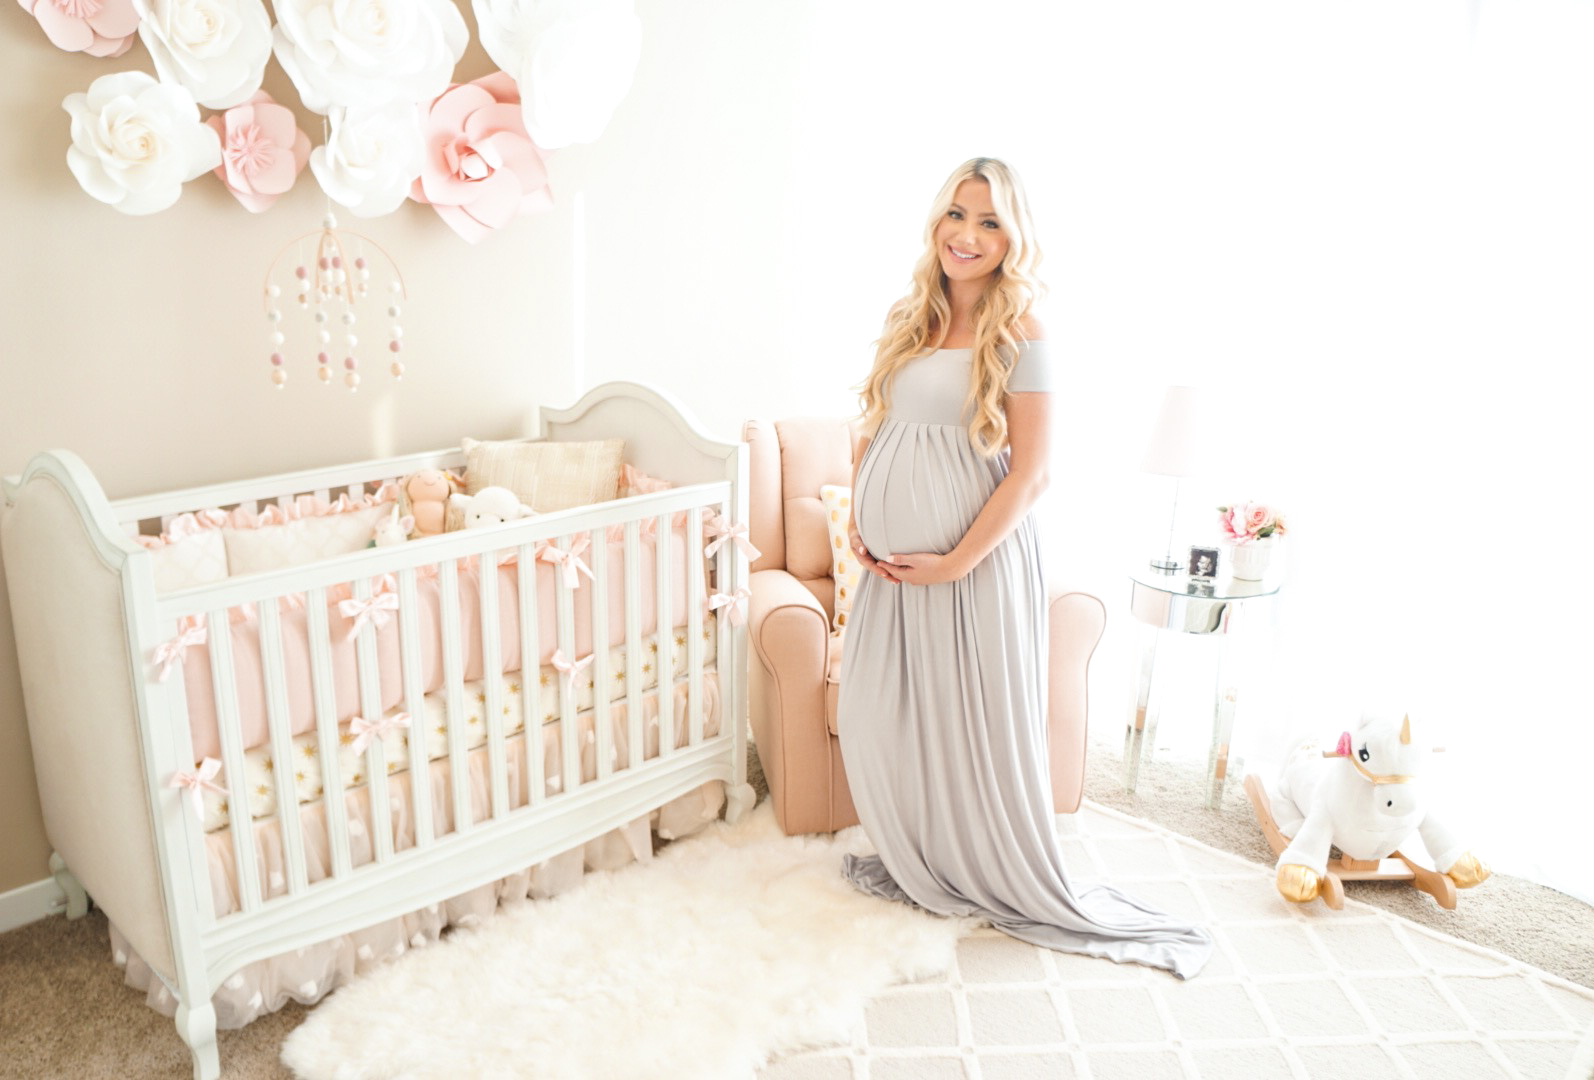 Comely Pink Baby Girl Nursery Ideas Baby Girl Nursery Signs Pink Baby Girl Nursery Decor A Touch Blogger Katelyn Jones A Touch houzz-03 Baby Girl Nursery